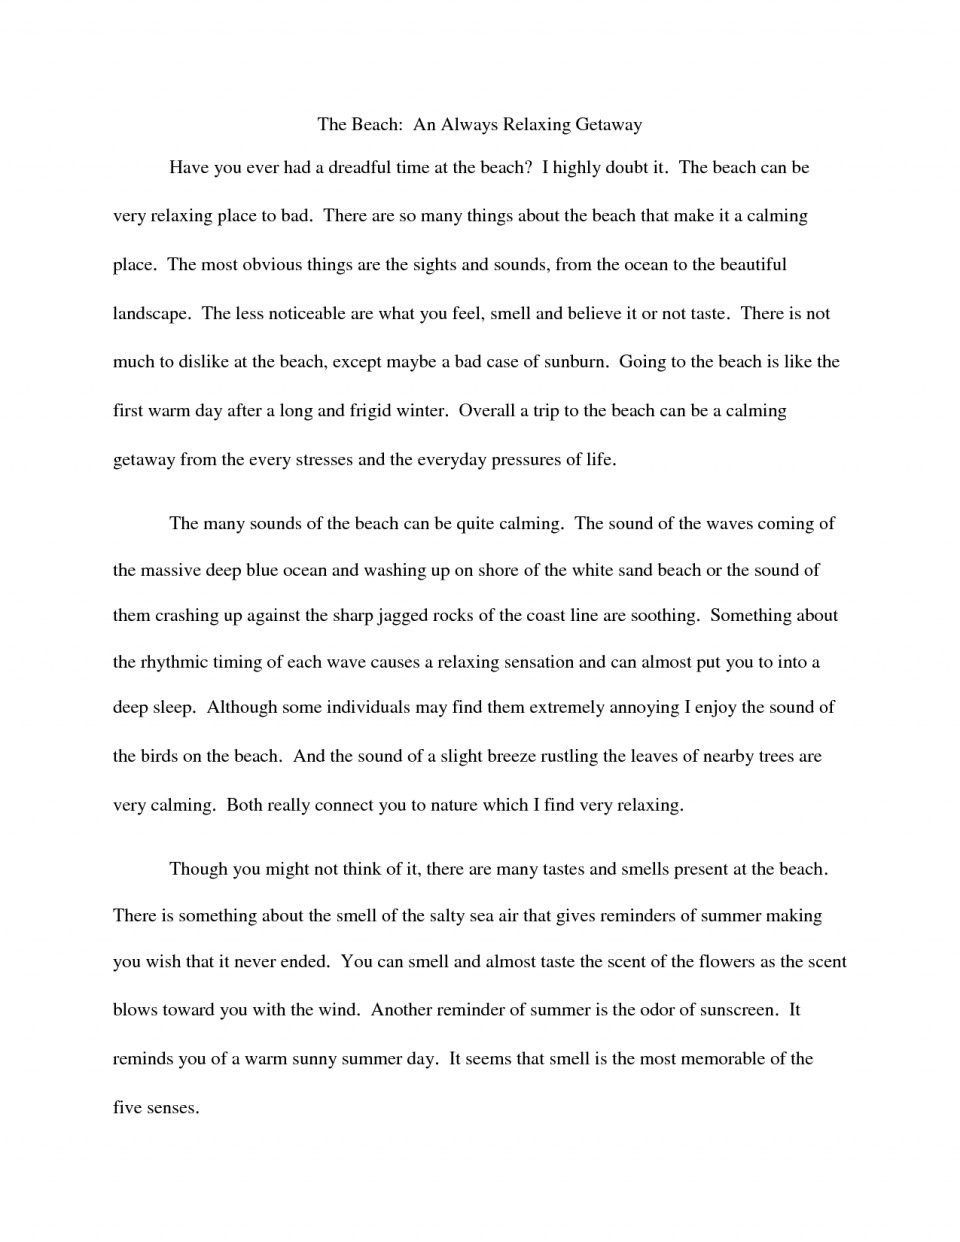 004 Essaye Descriptive Beach Essays College That Stand Out Odvqltnc Short On The Sunset Paper Barefoot About Walk Vacation Narrative At Night Free Walking Amazing Examples Essay Sample For High School A Person Food 960